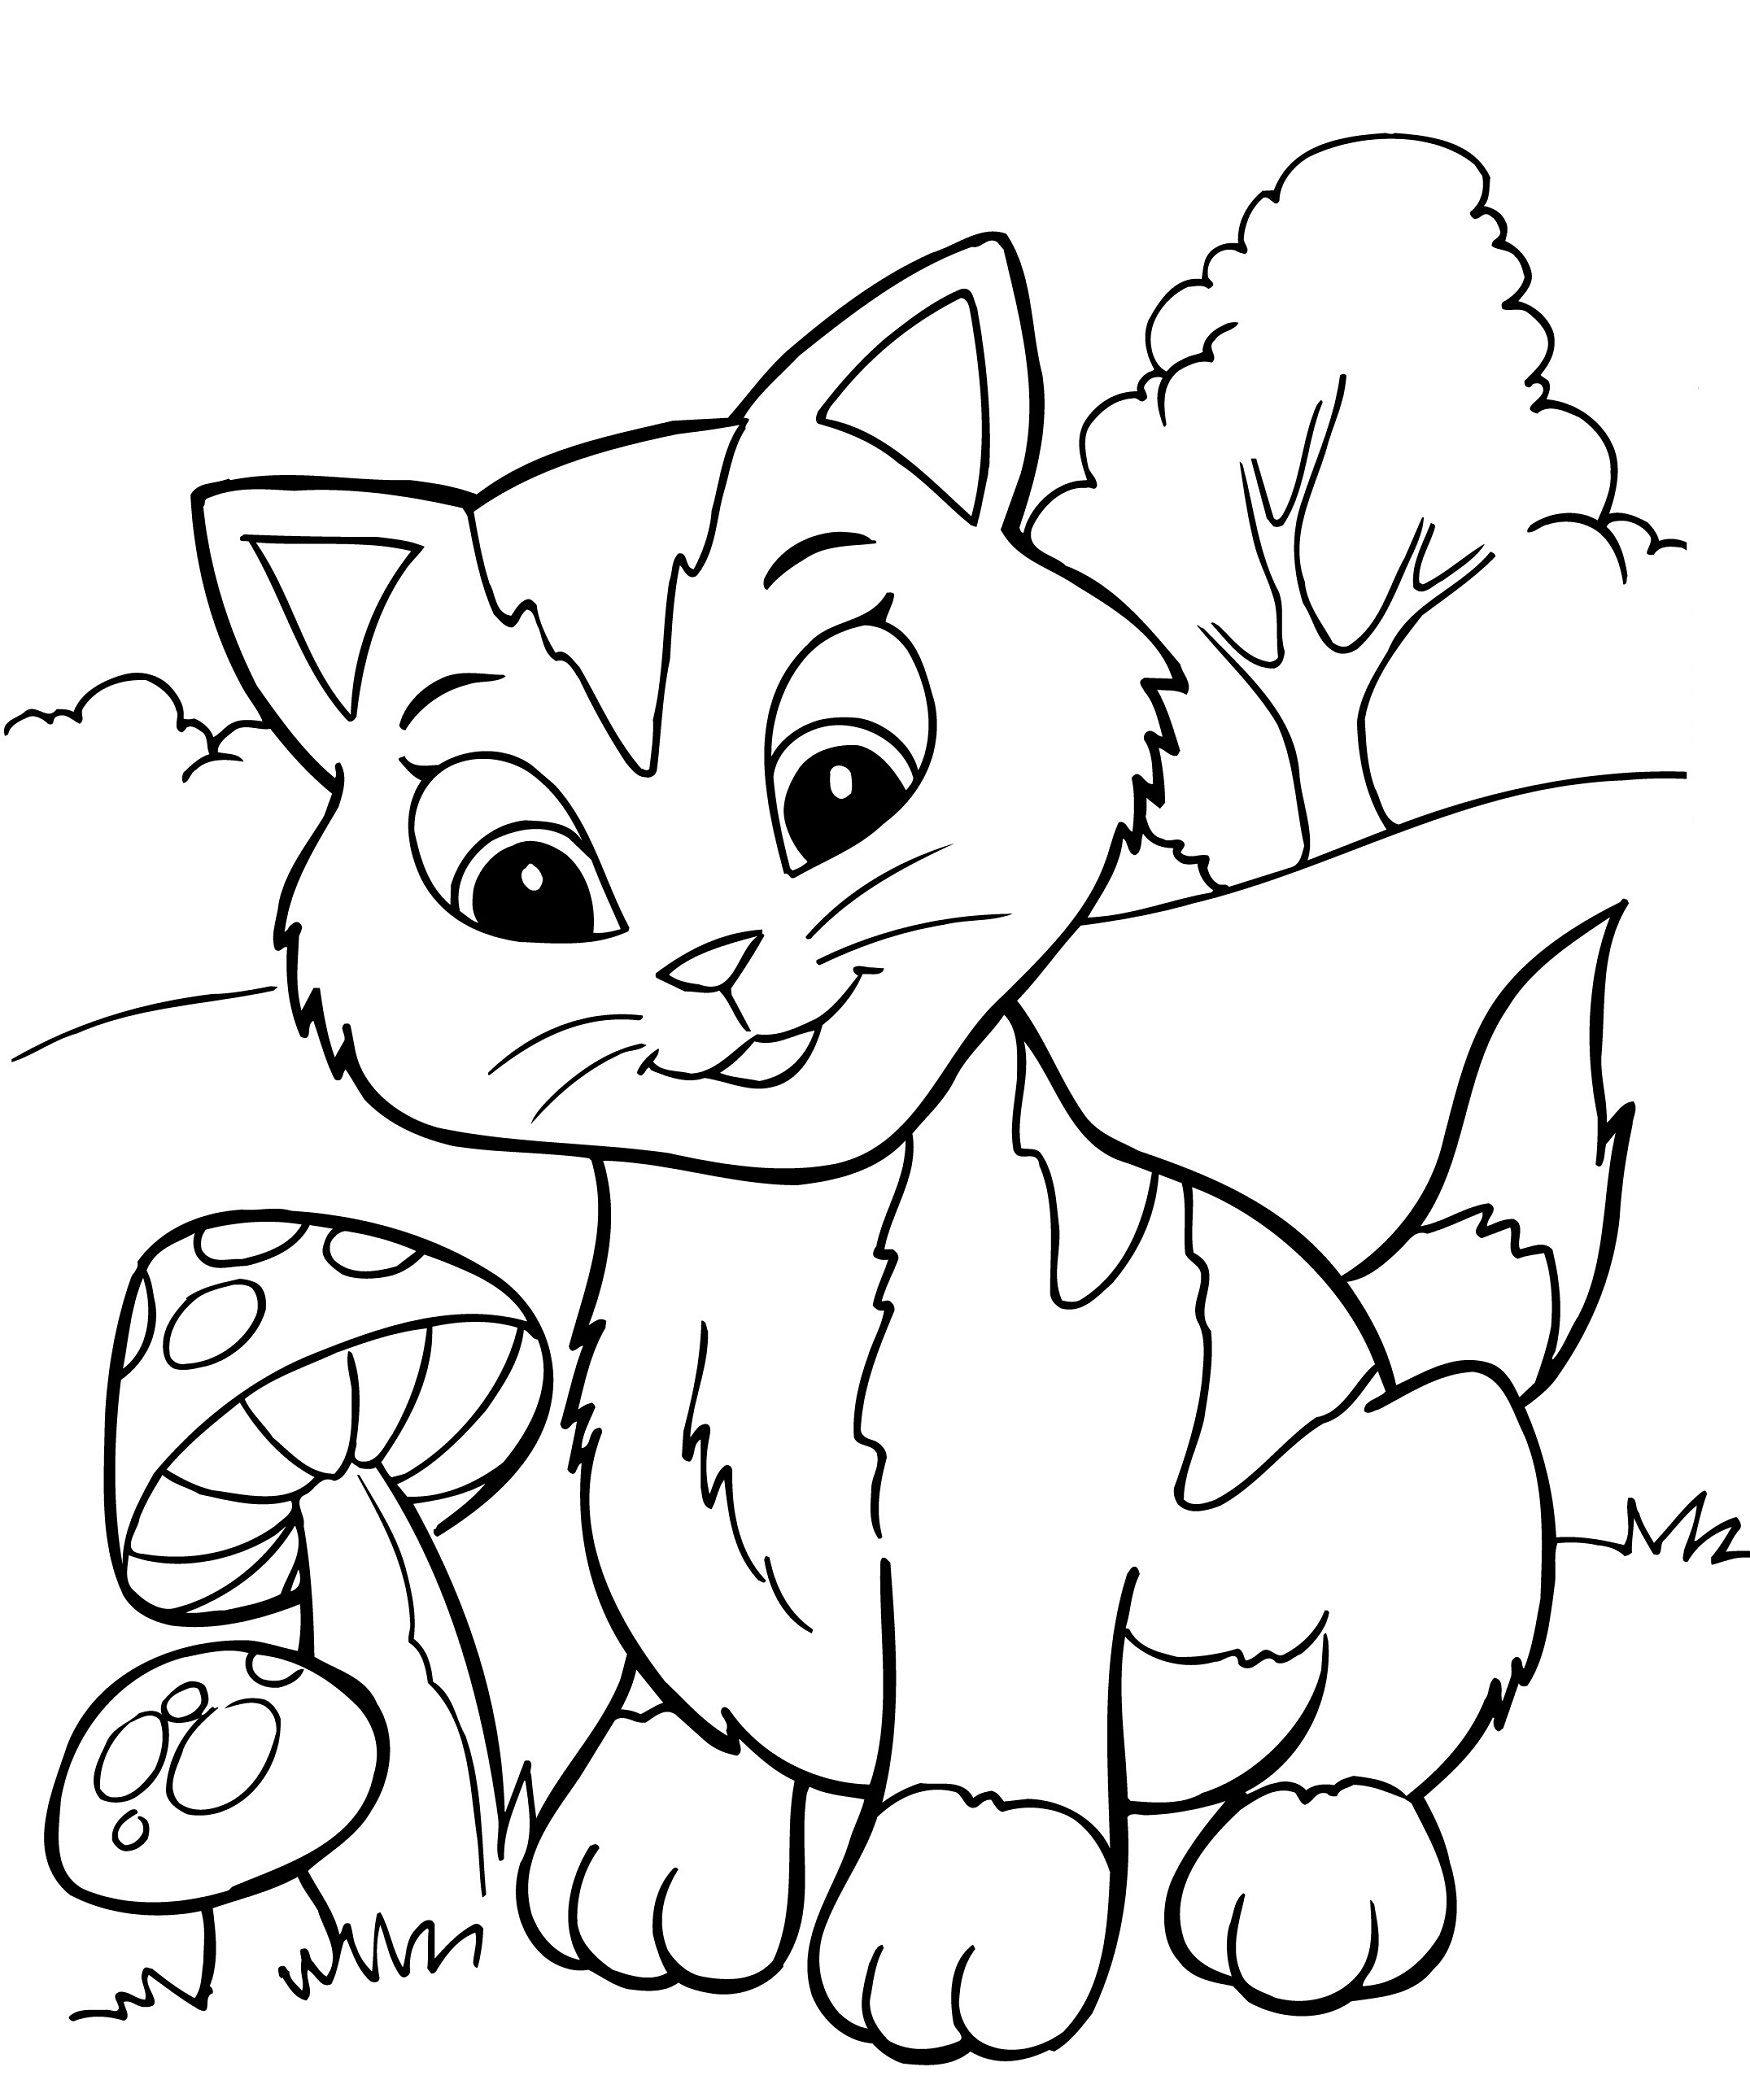 kitty coloring get this printable cute baby kitten coloring pages 5sda9 coloring kitty